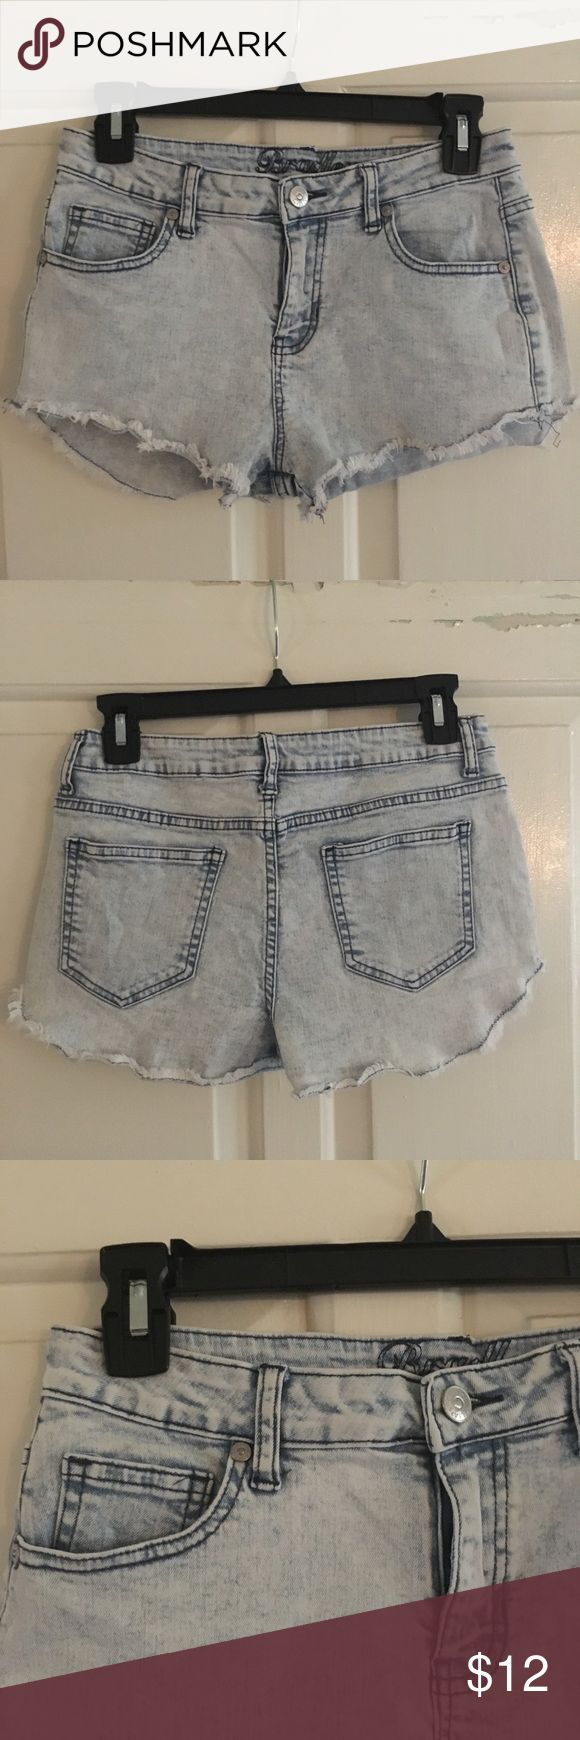 🌀 High wasted Acid wash shorts High Wasted acid wash shorts in good condition, some wrinkling on the bottom hems but could be easily steamed or ironed! Pockets all functional, size tag says 5/6 but really fits like a 4! Shorts Jean Shorts